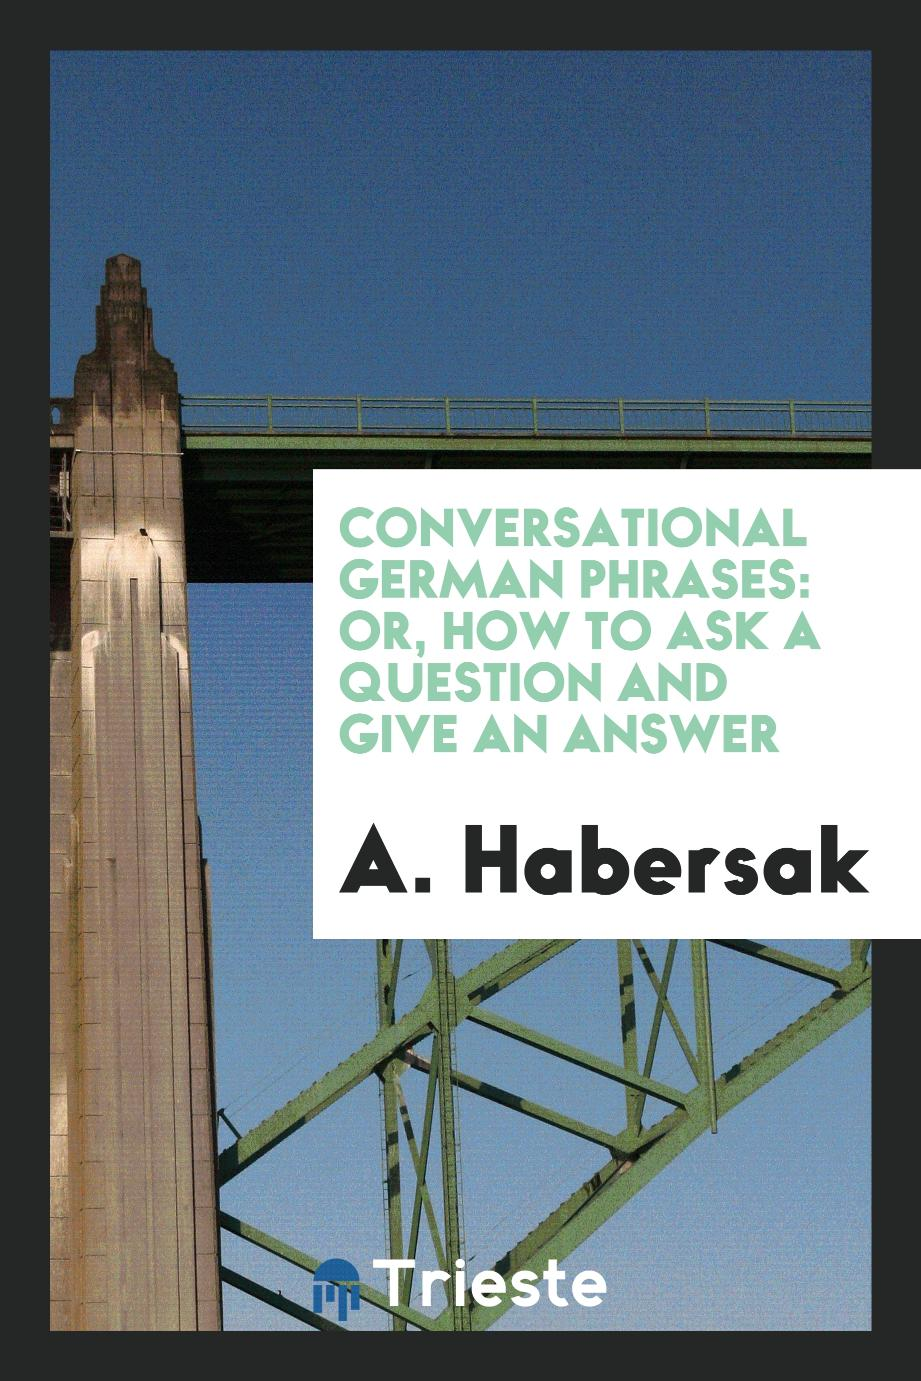 Conversational German phrases: or, How to ask a question and give an answer